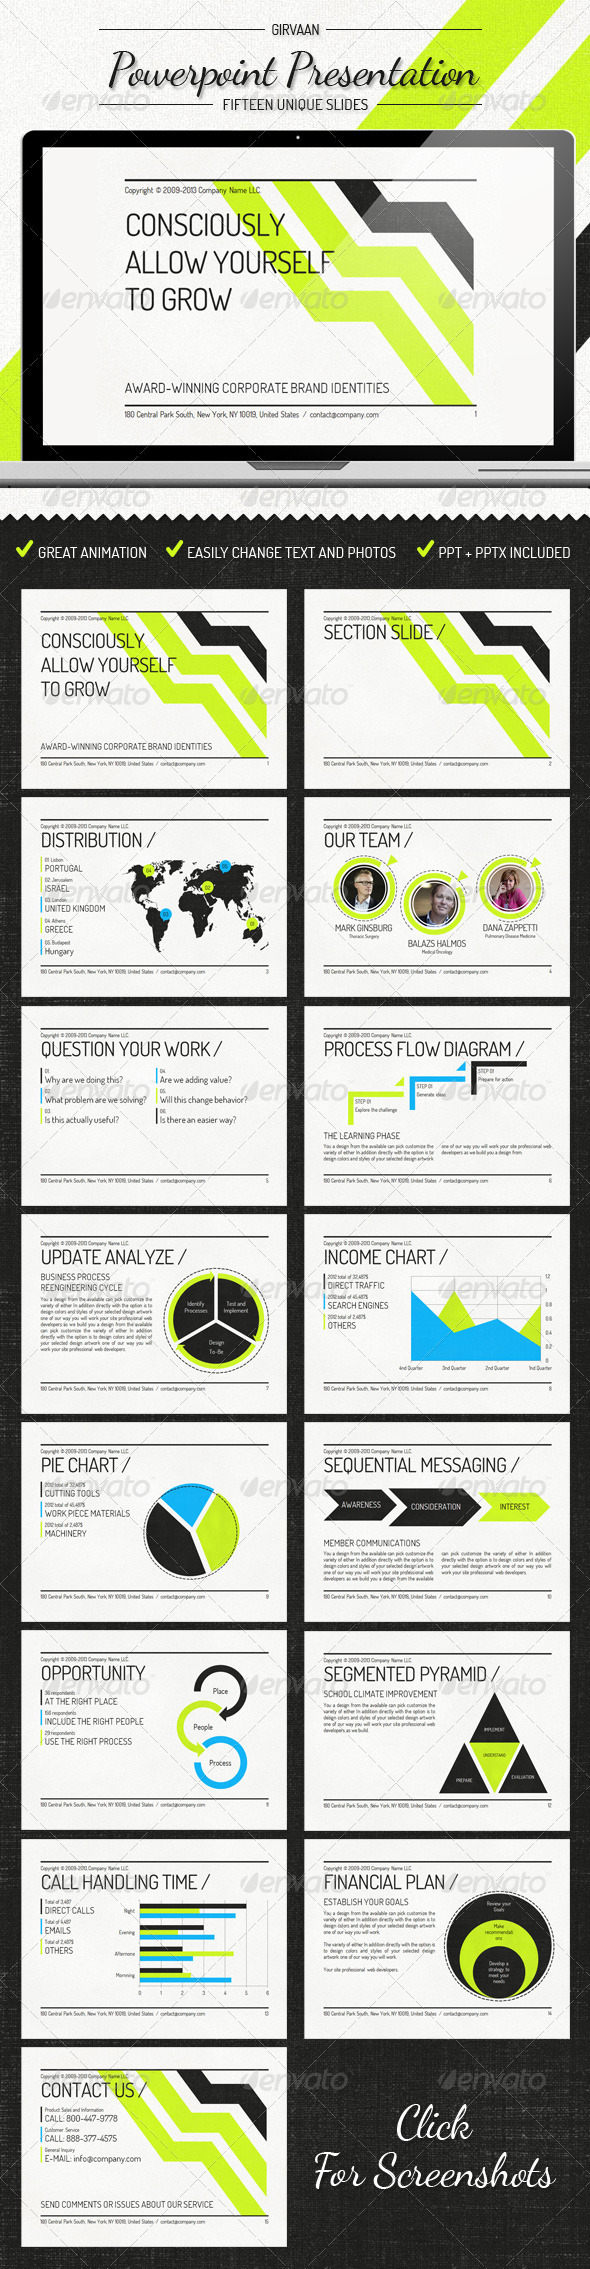 Girvann - Power Point Presentation - Powerpoint Templates Presentation Templates